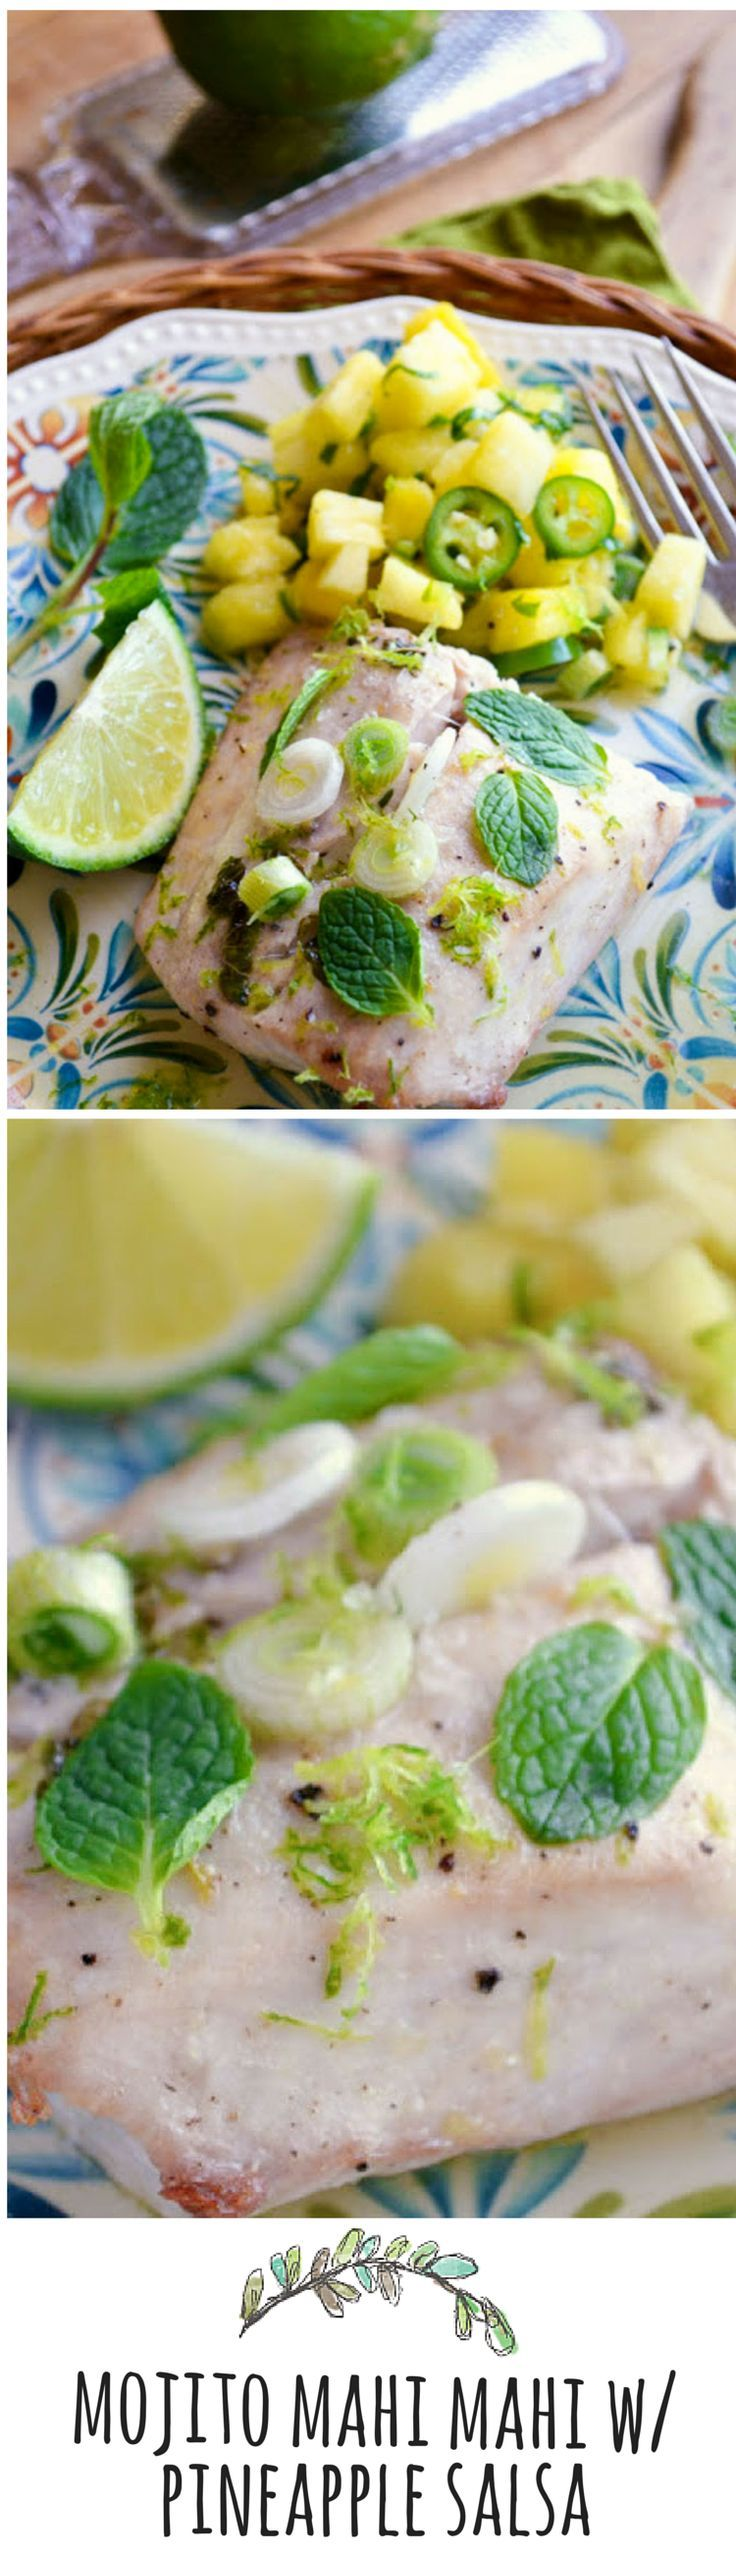 A quick and easy tropical weeknight dinner!